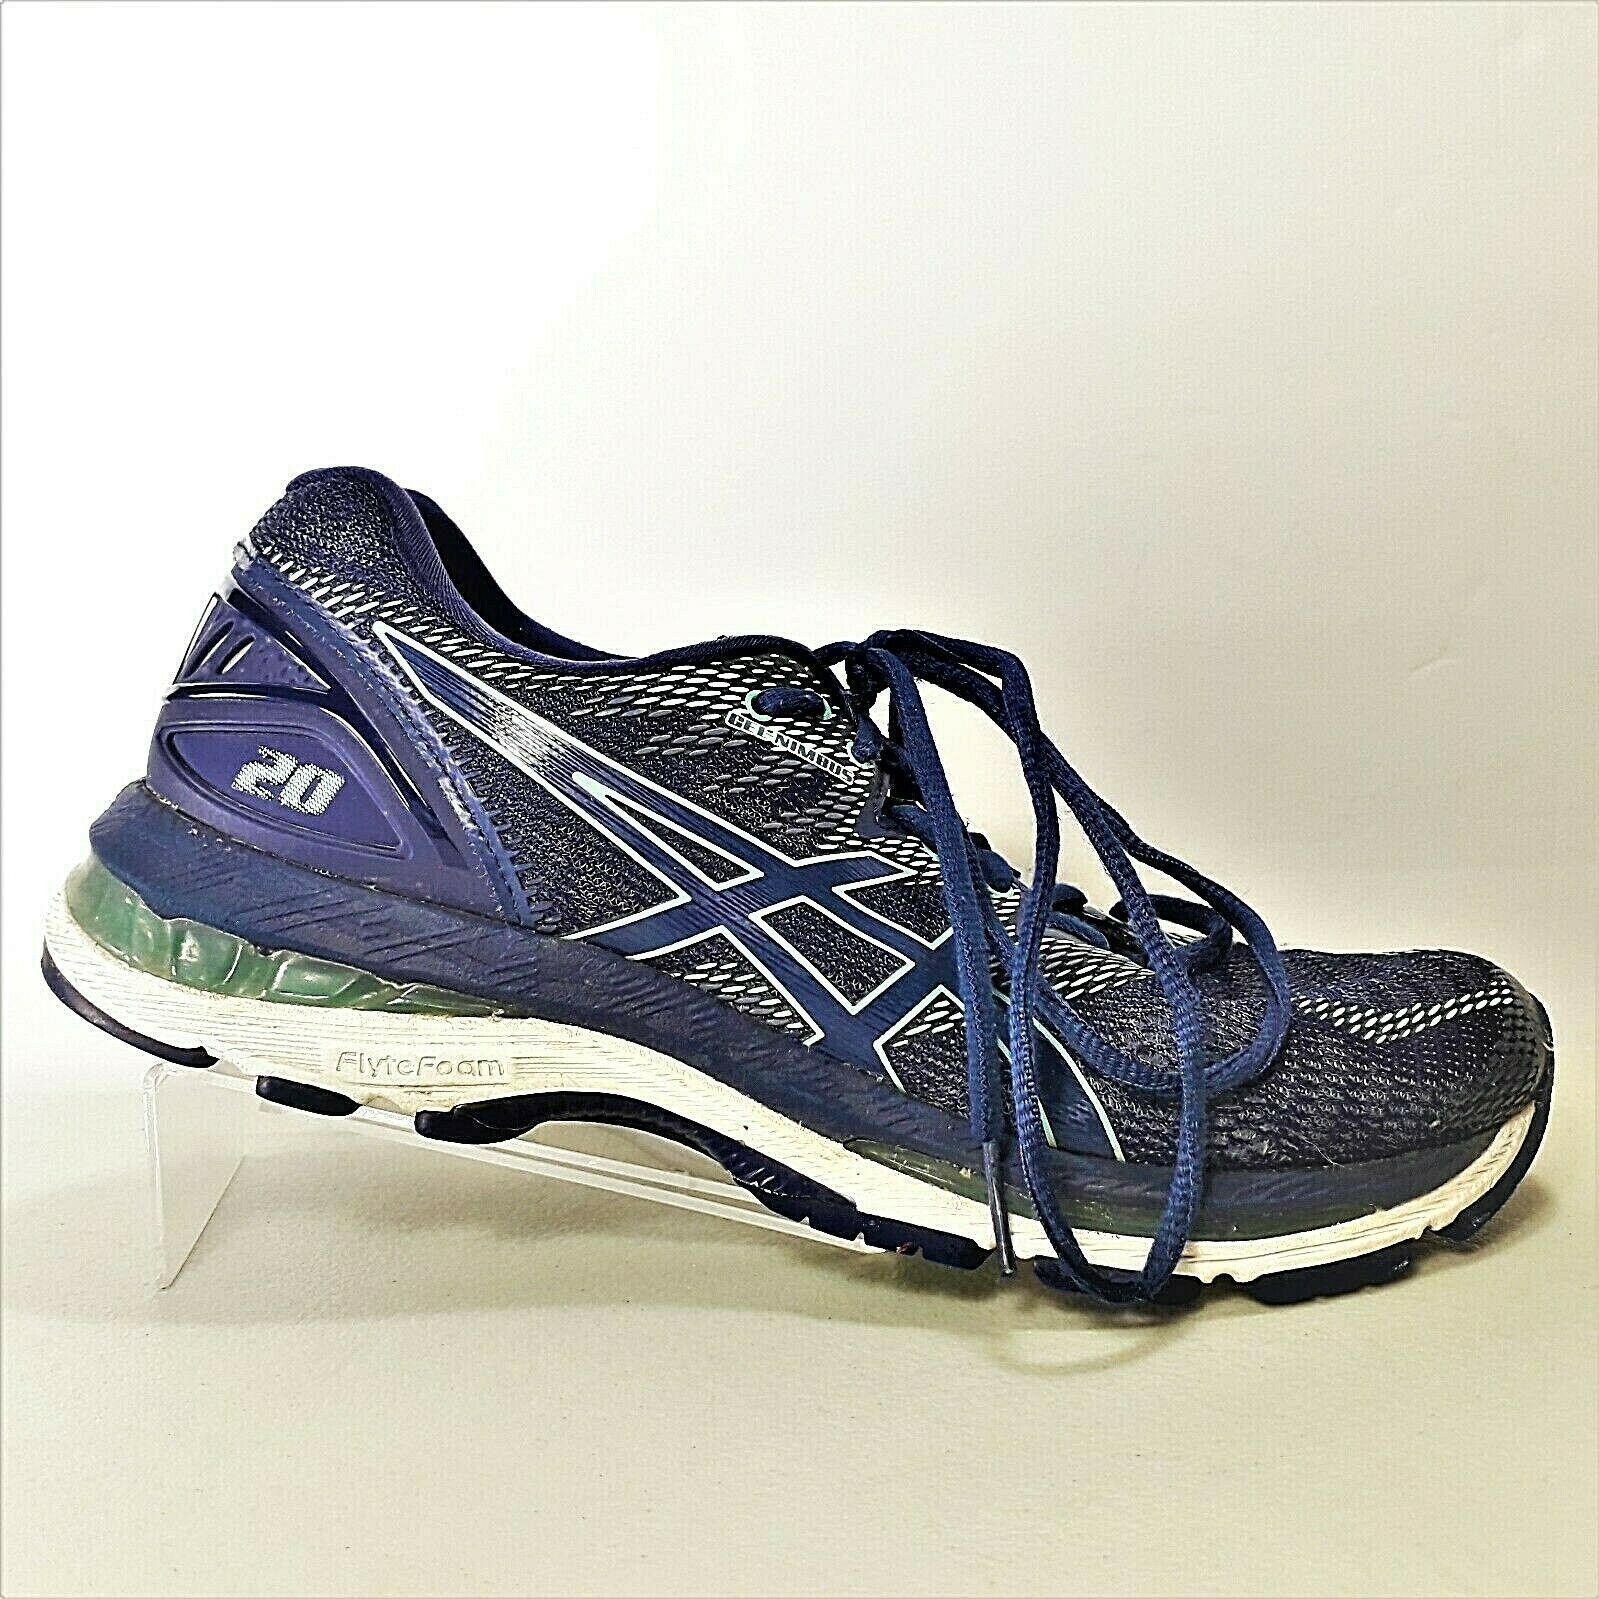 Primary image for ASICS Gel-Nimbus 20 Womens Navy Blue & Teal Athletic Shoes T850N Size 8.5 US